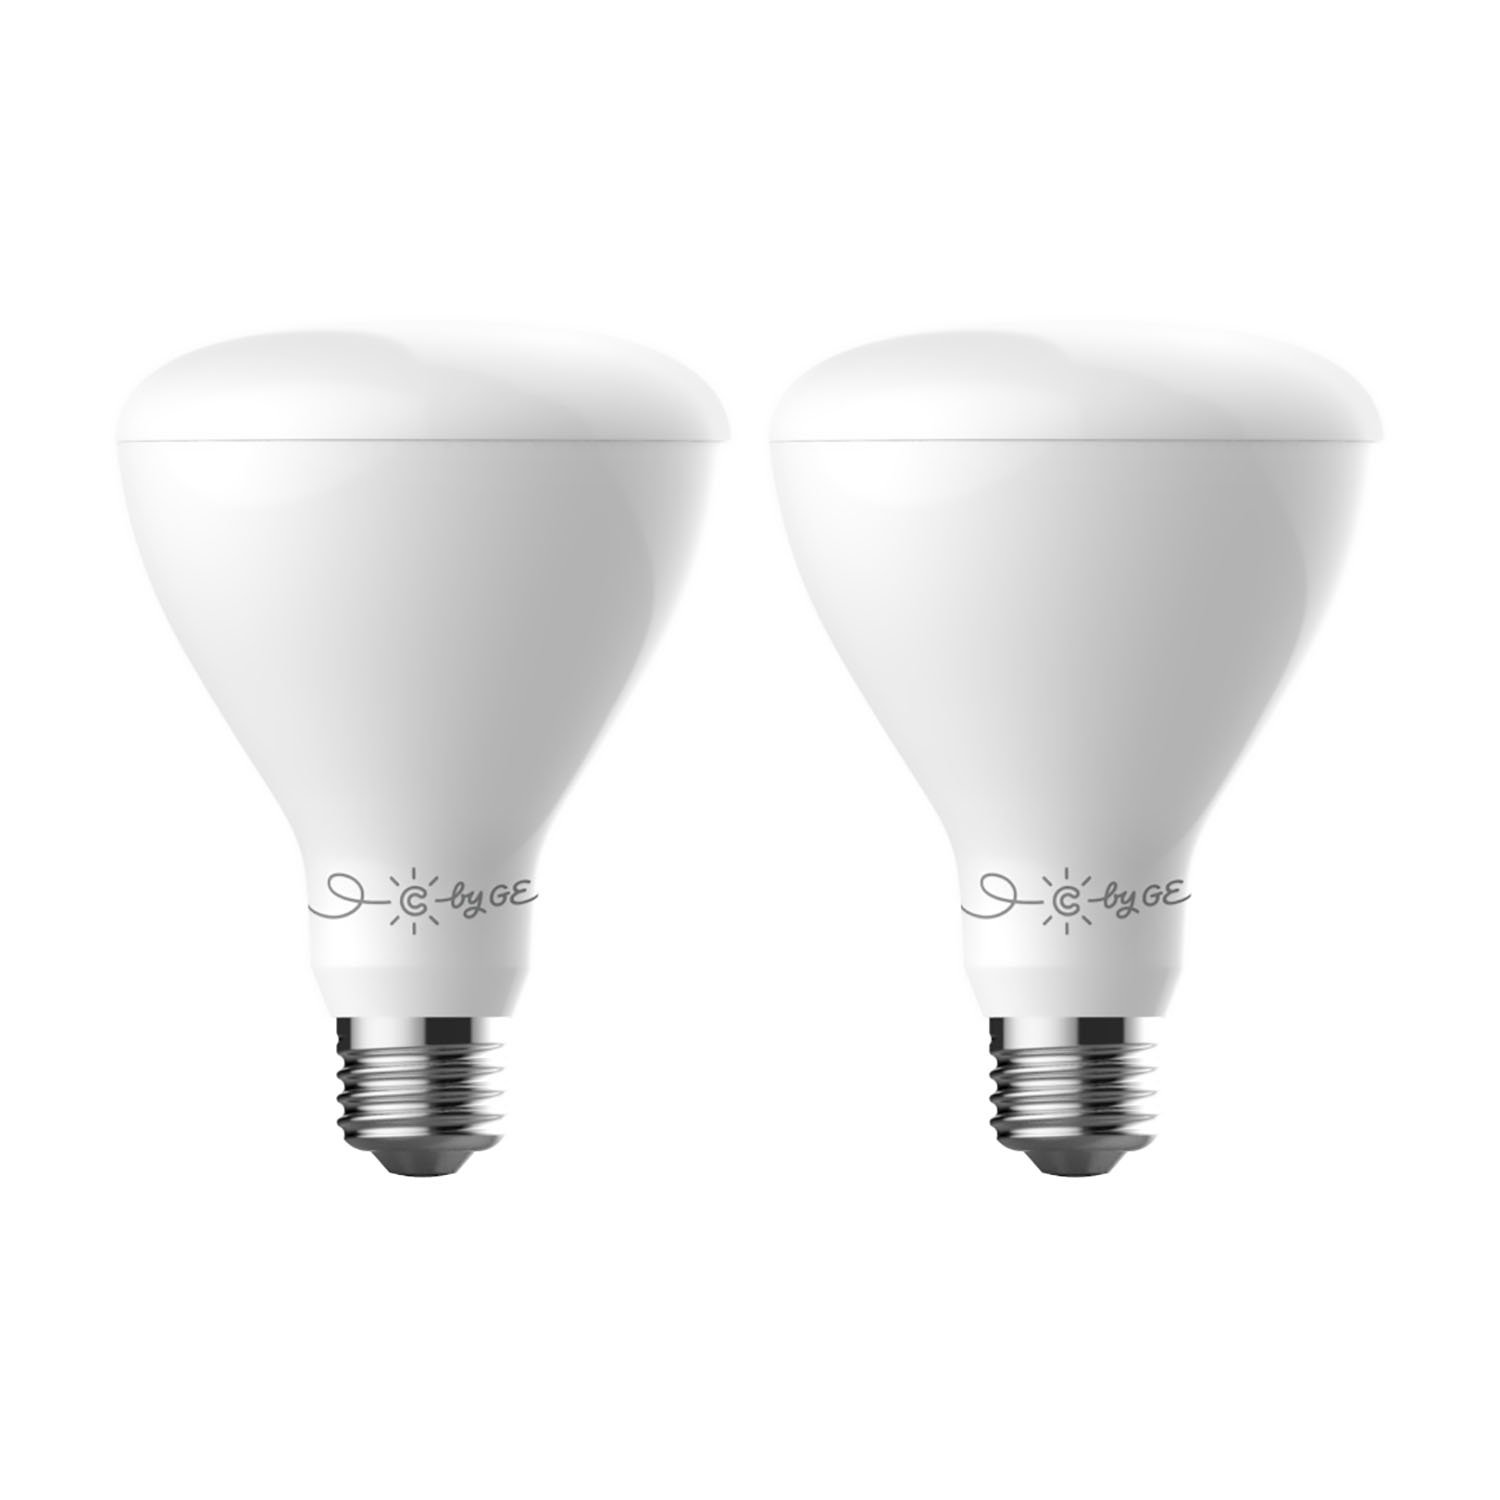 C by GE C-Life Smart LED Tintable White Indoor Floodlight Light Bulbs by GE Lighting, 2-Pack, Works with Alexa